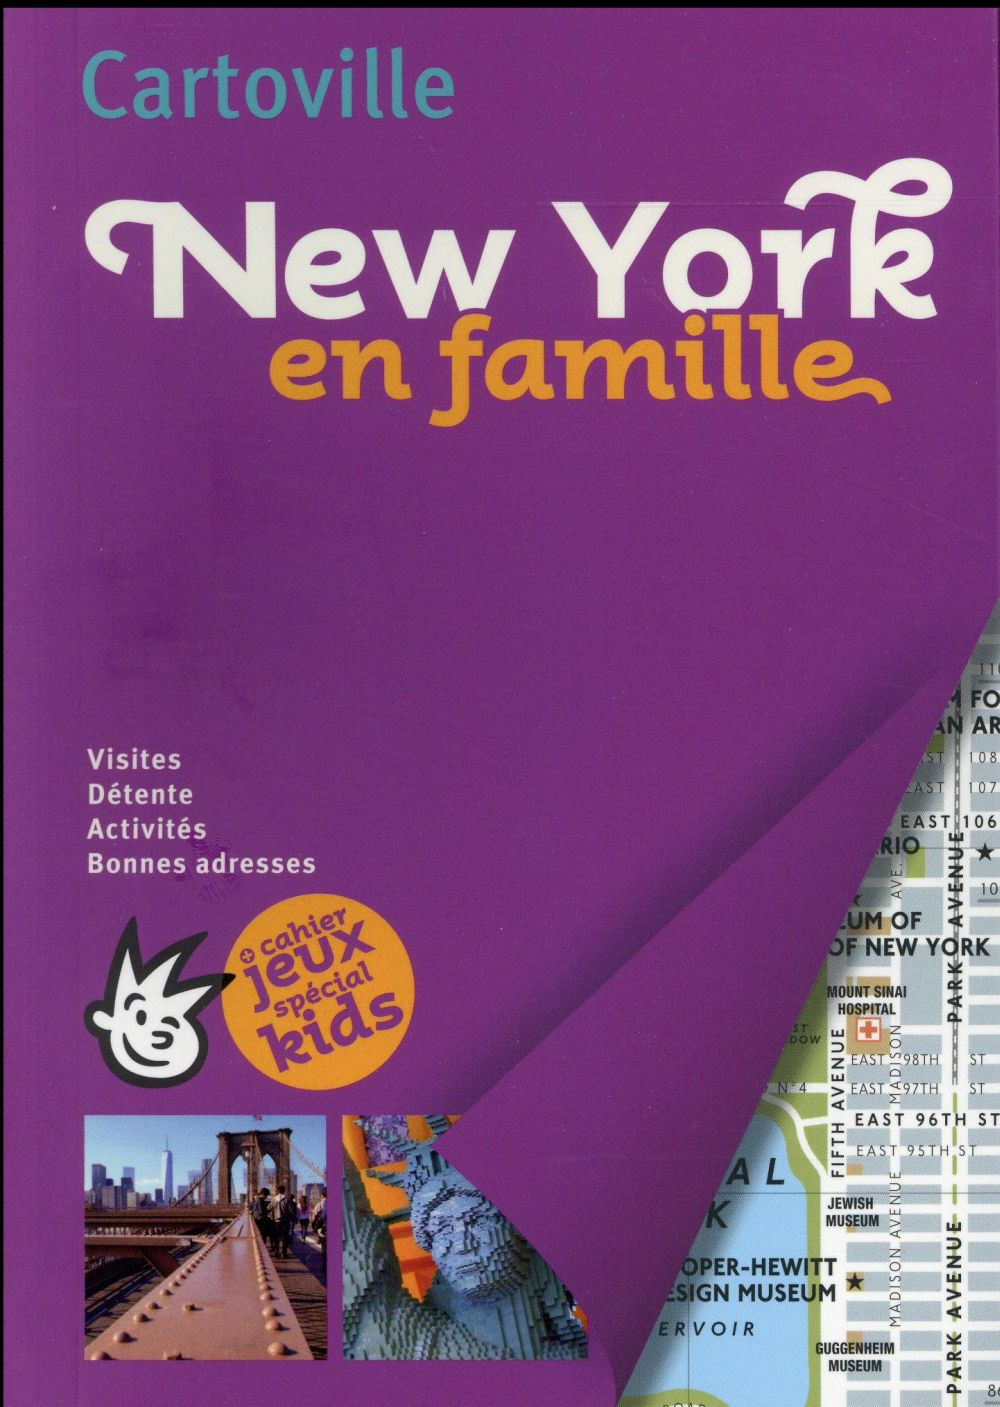 Cartoville New York en famille - Gallimard